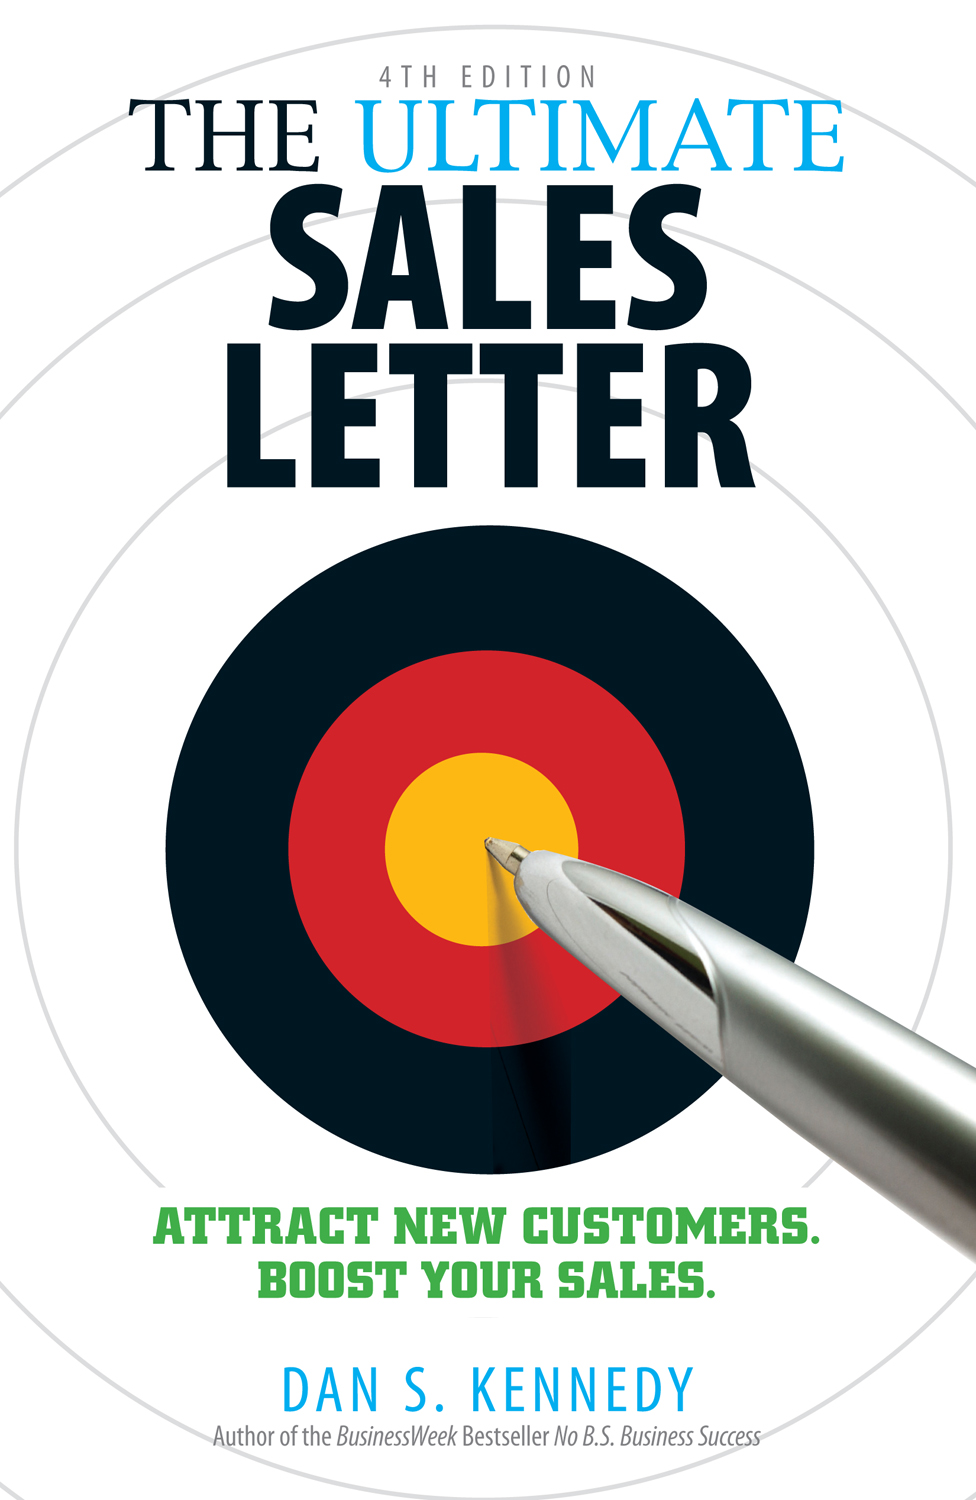 The Ultimate Sales Letter By: Dan S. Kennedy